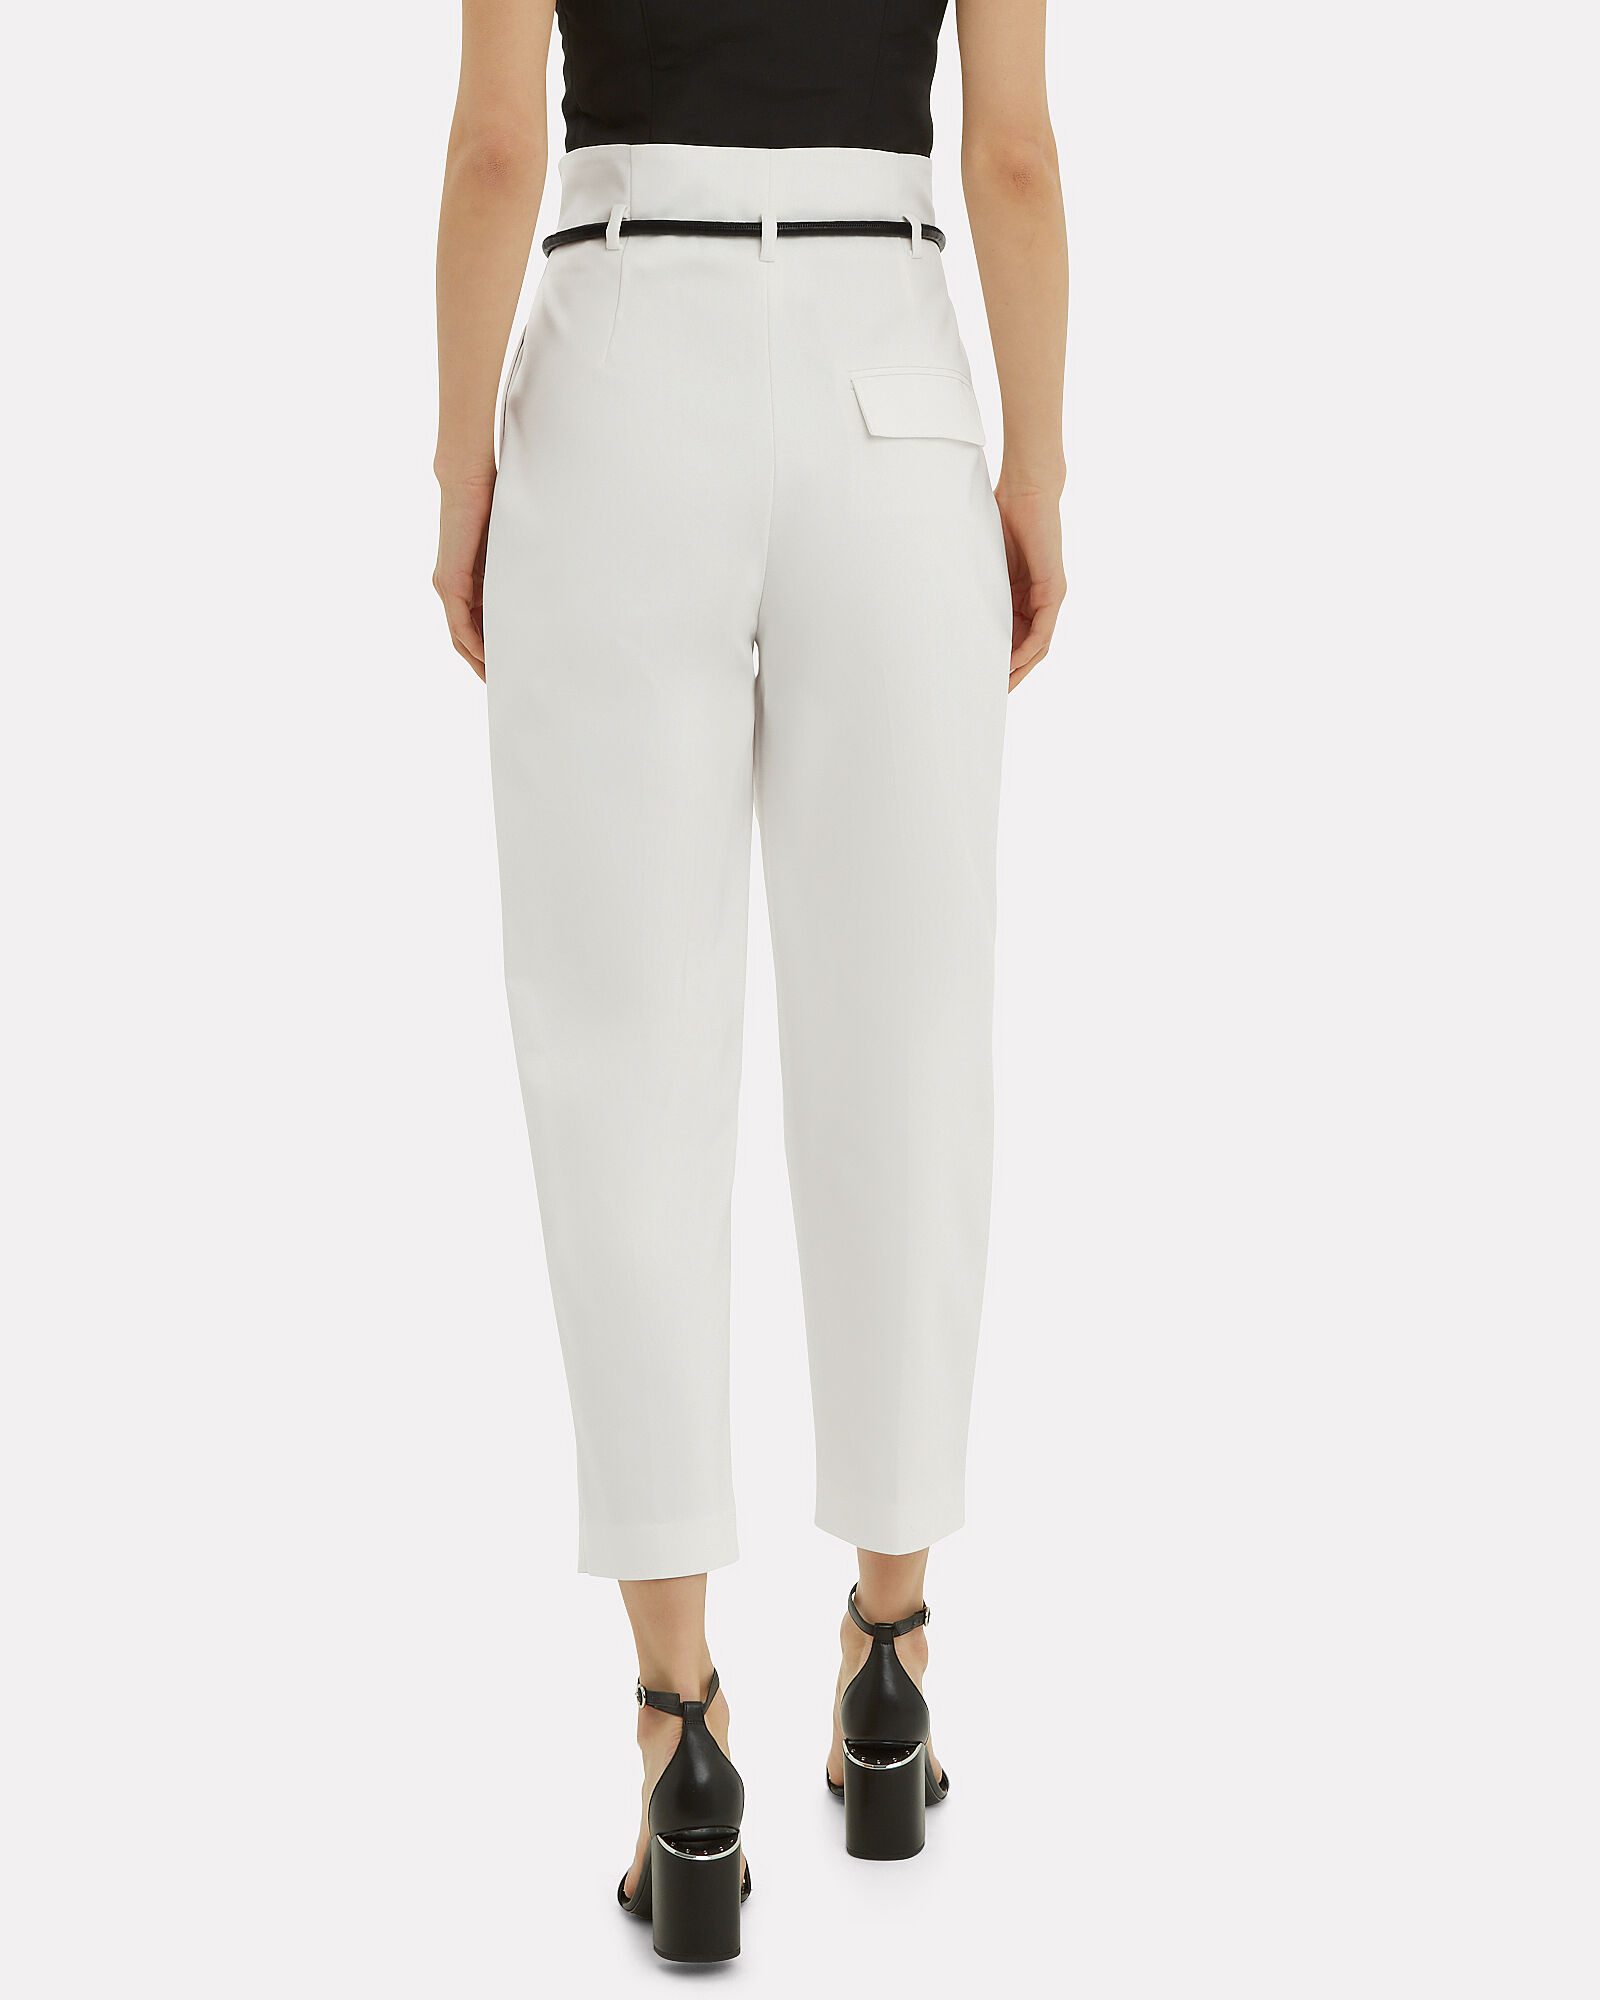 Origami Pleated Pants, IVORY, hi-res